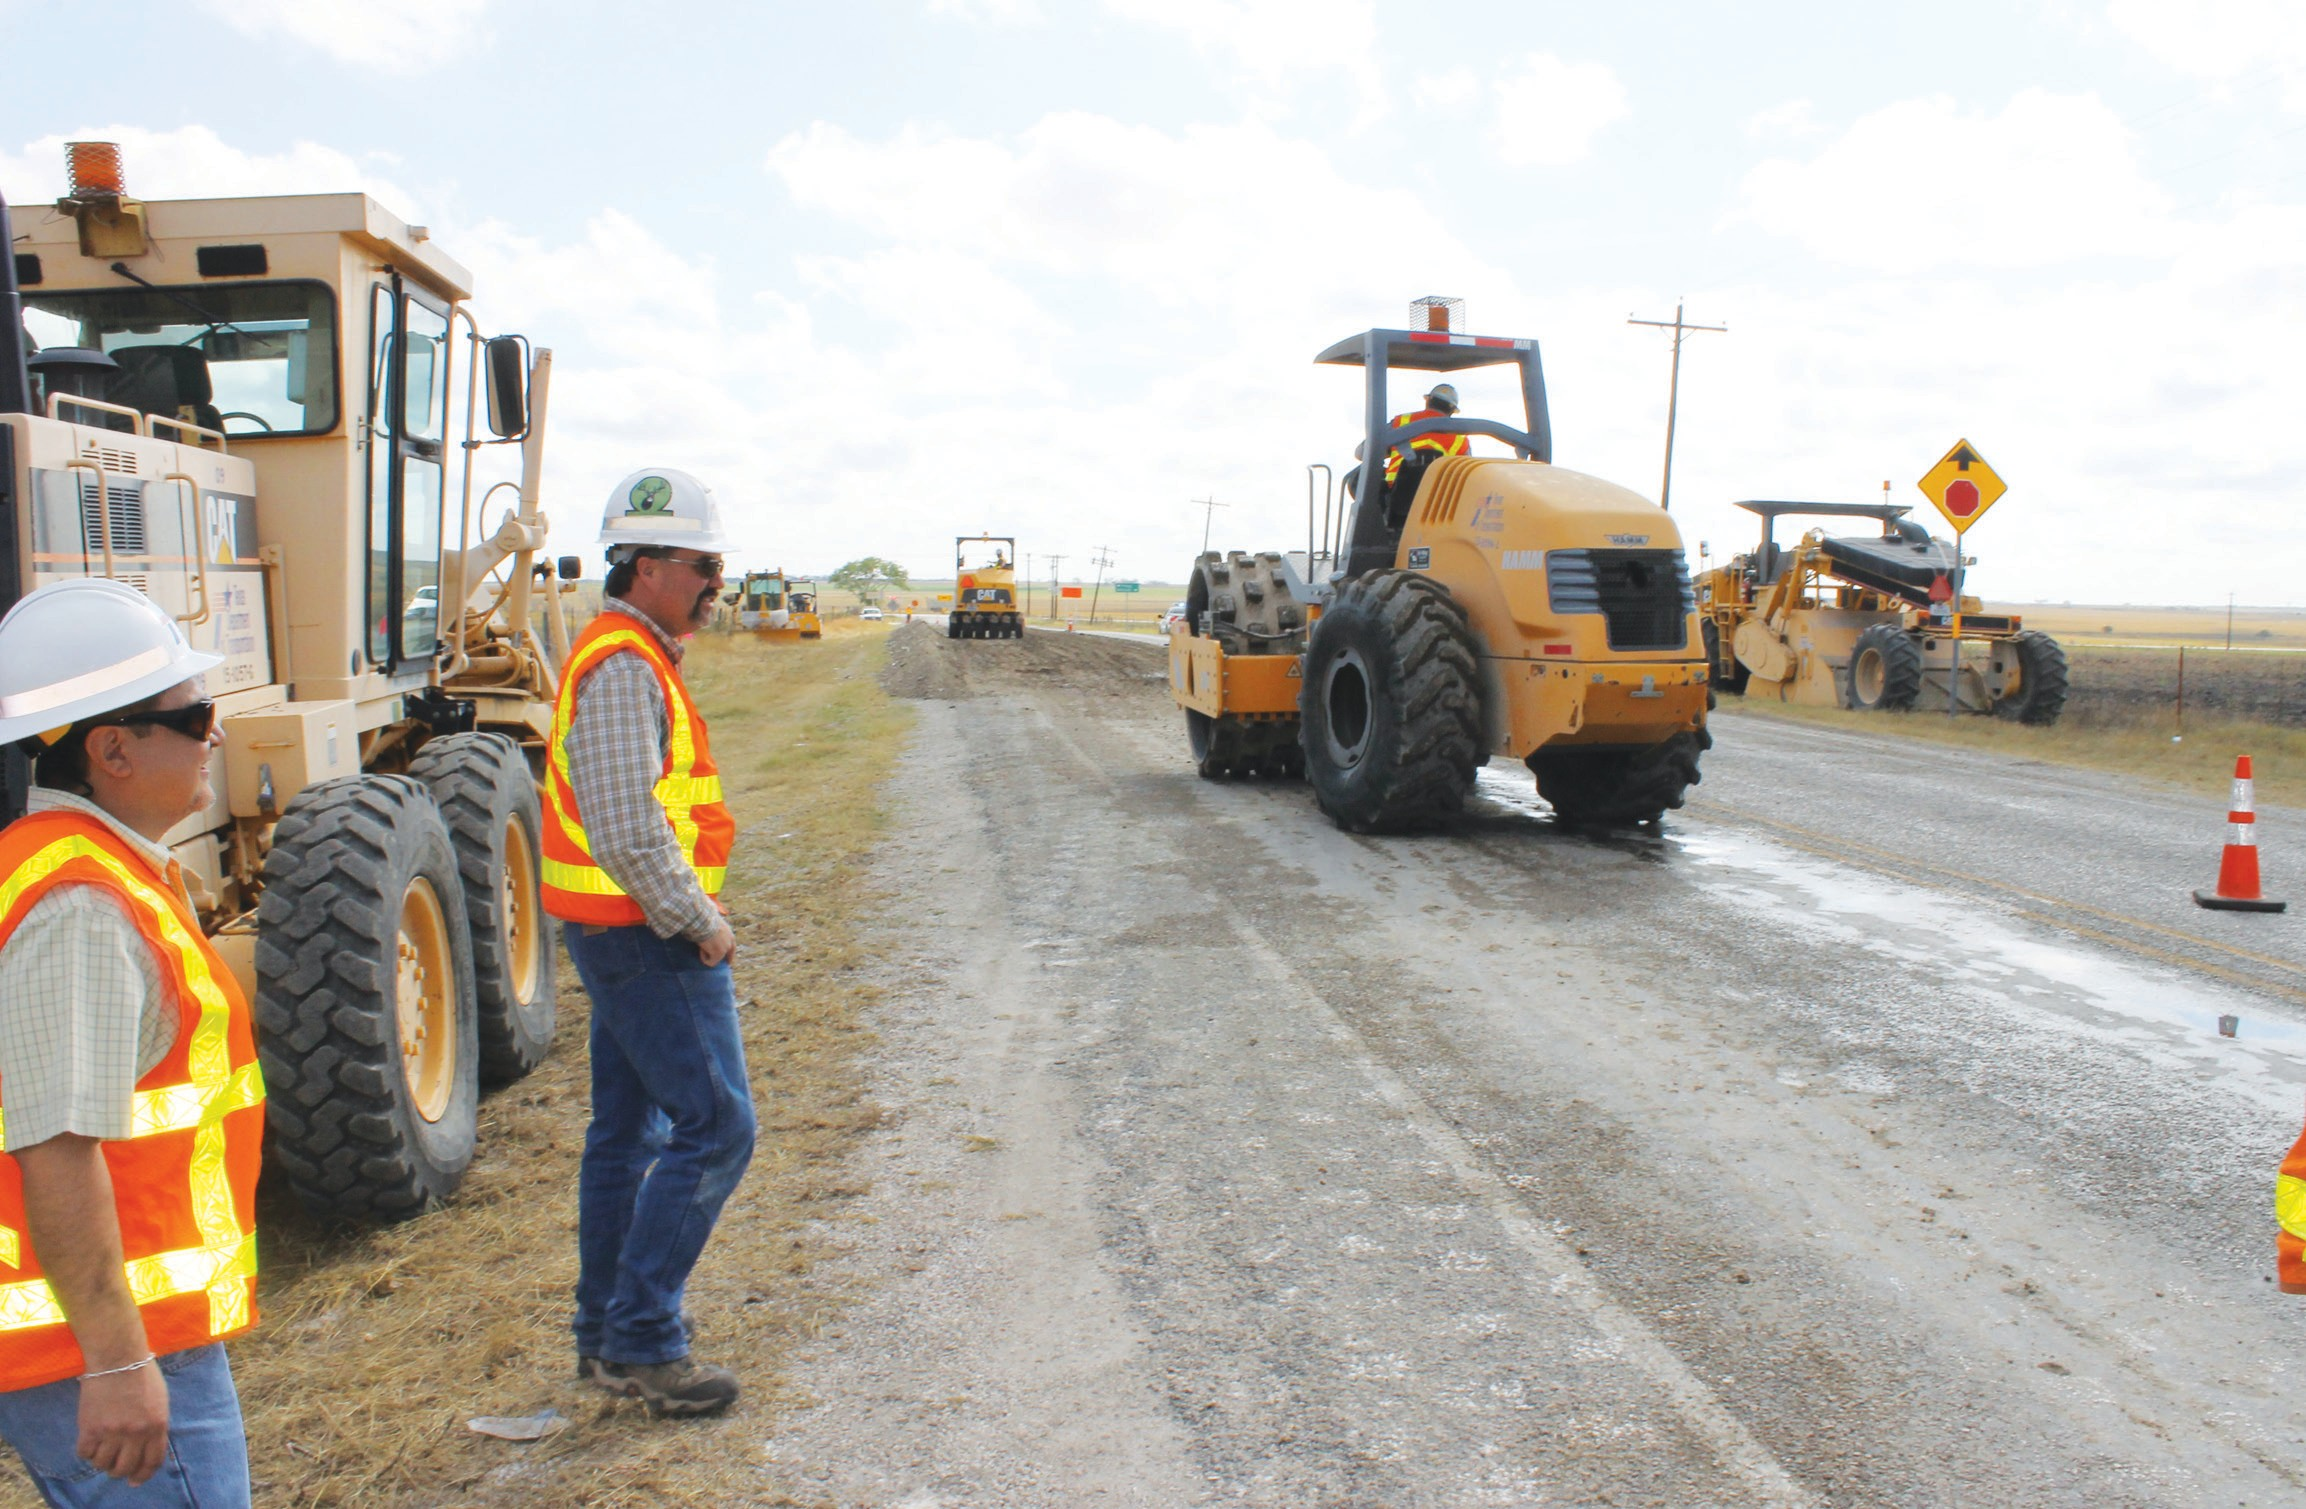 txdot is safety conscious when it comes to road repairs and traffic